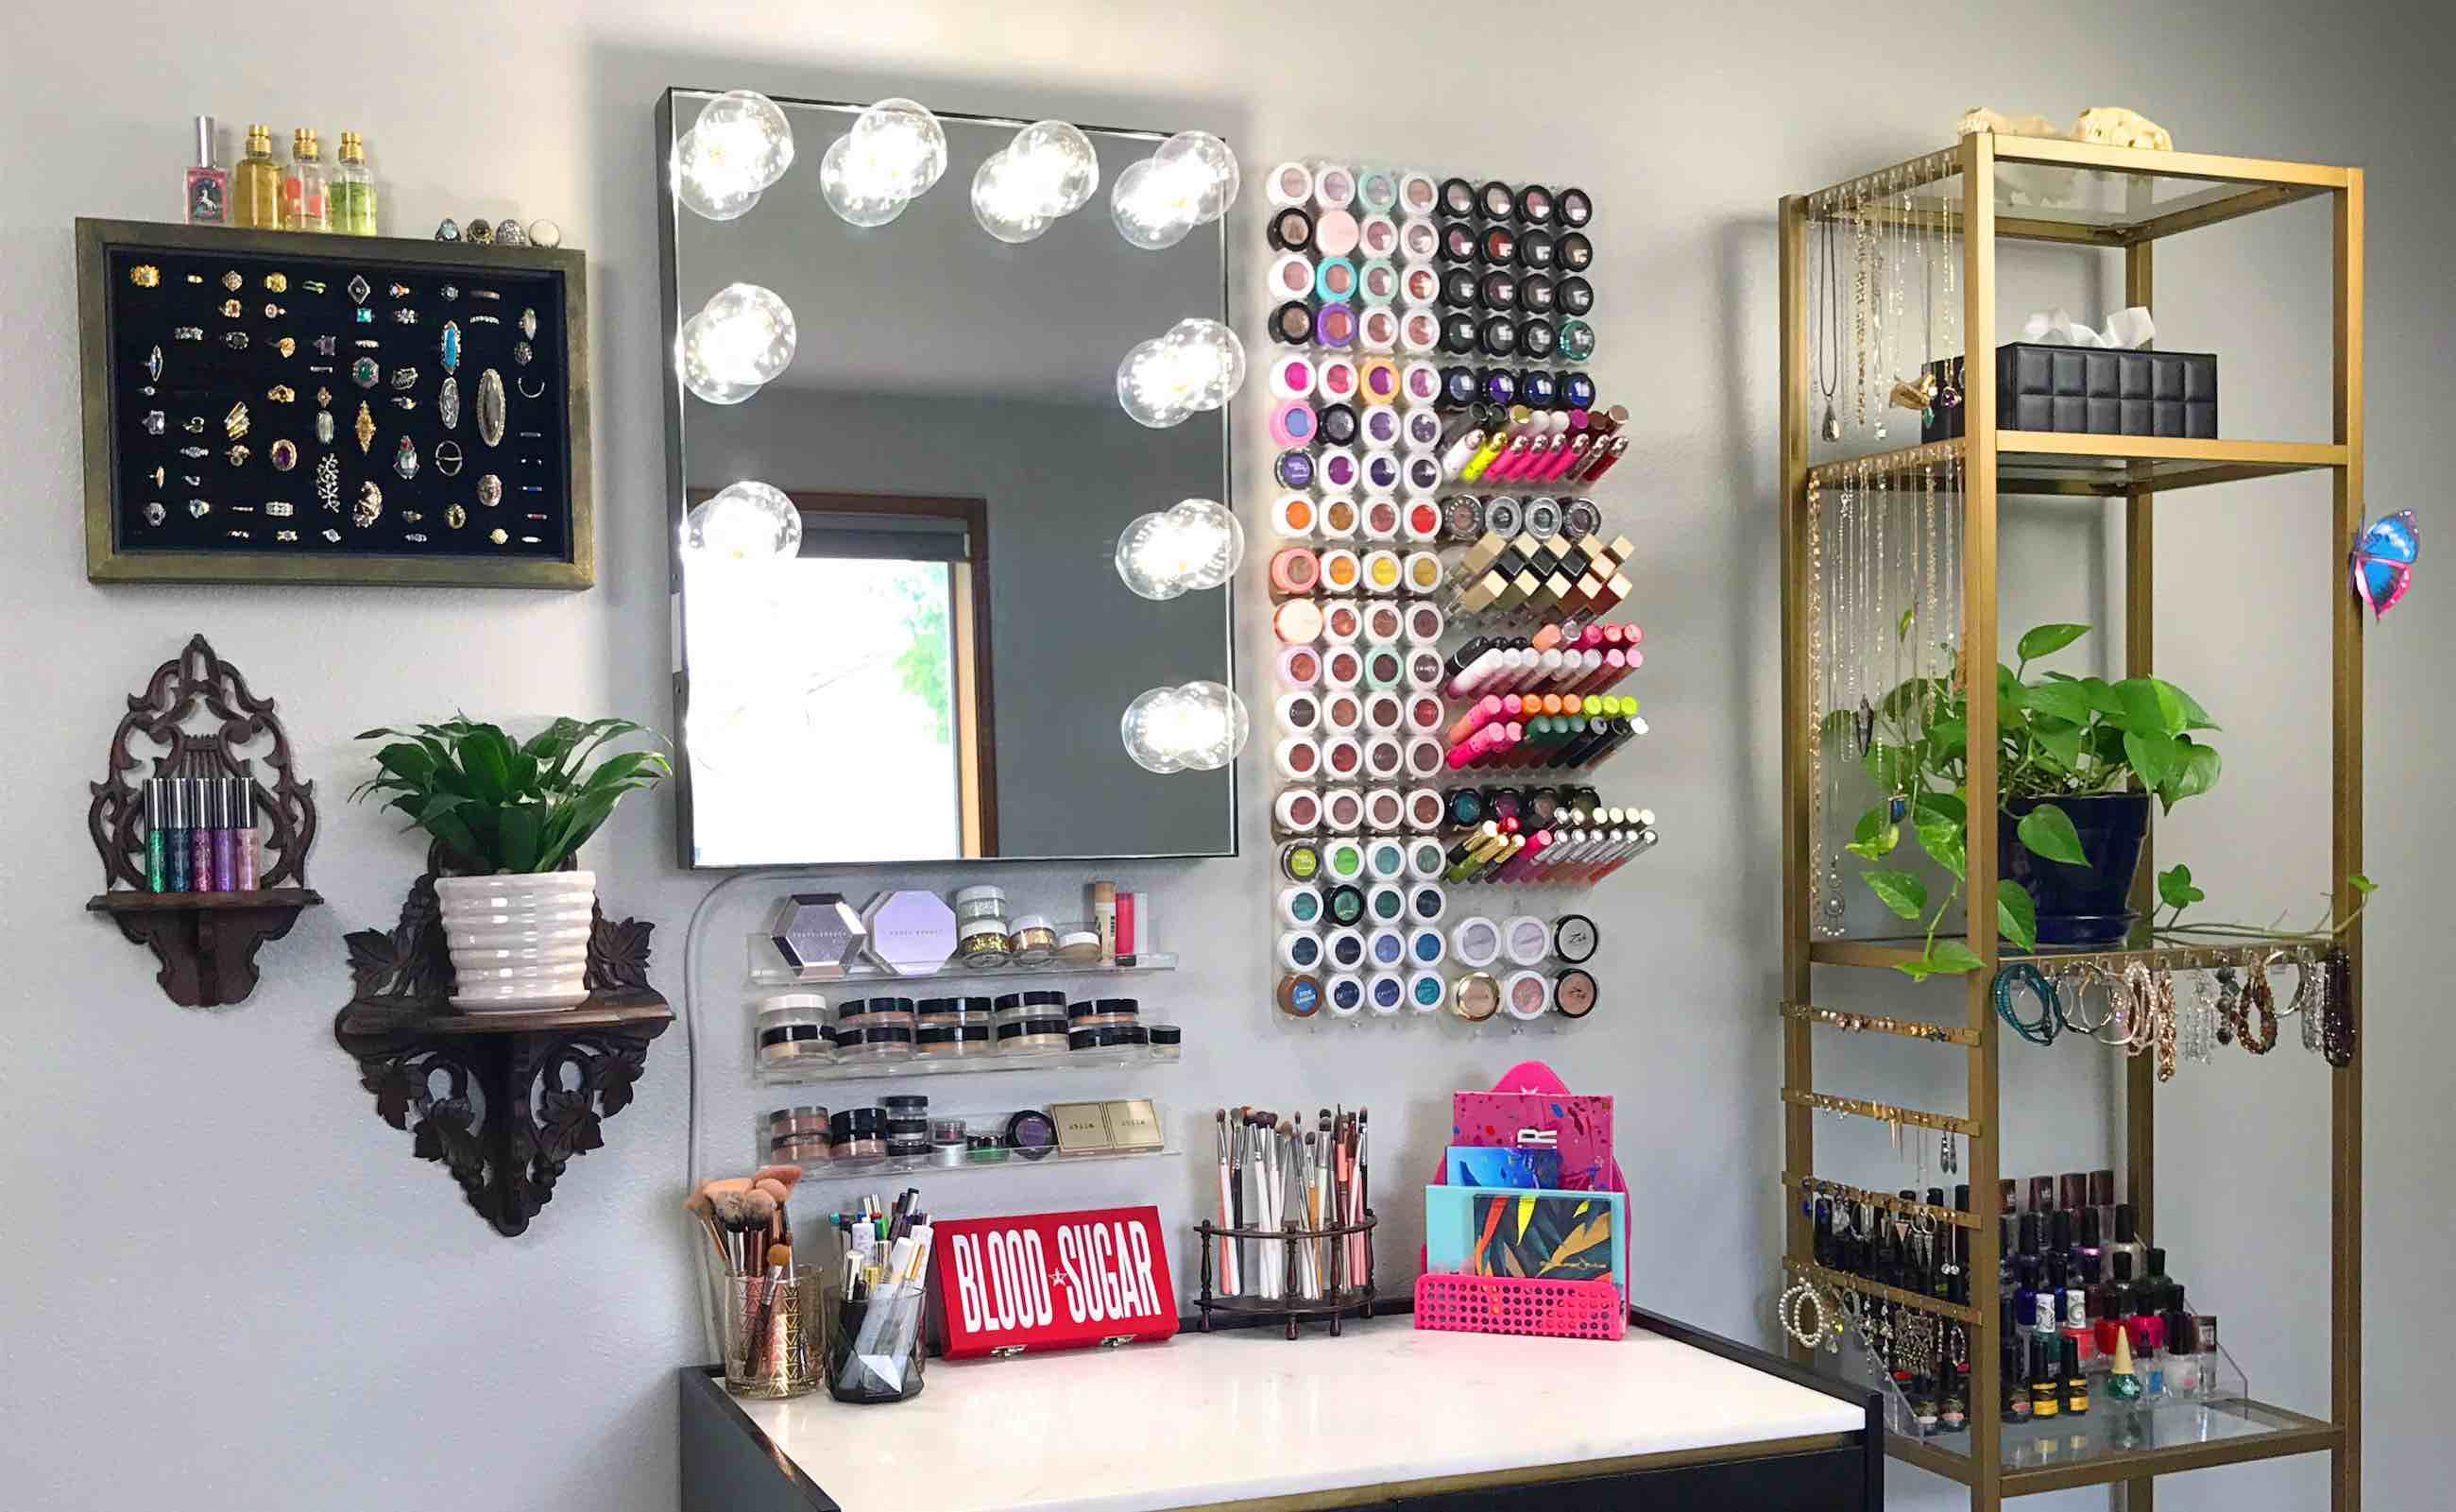 shadow rack modular makeup organizer will transform your space